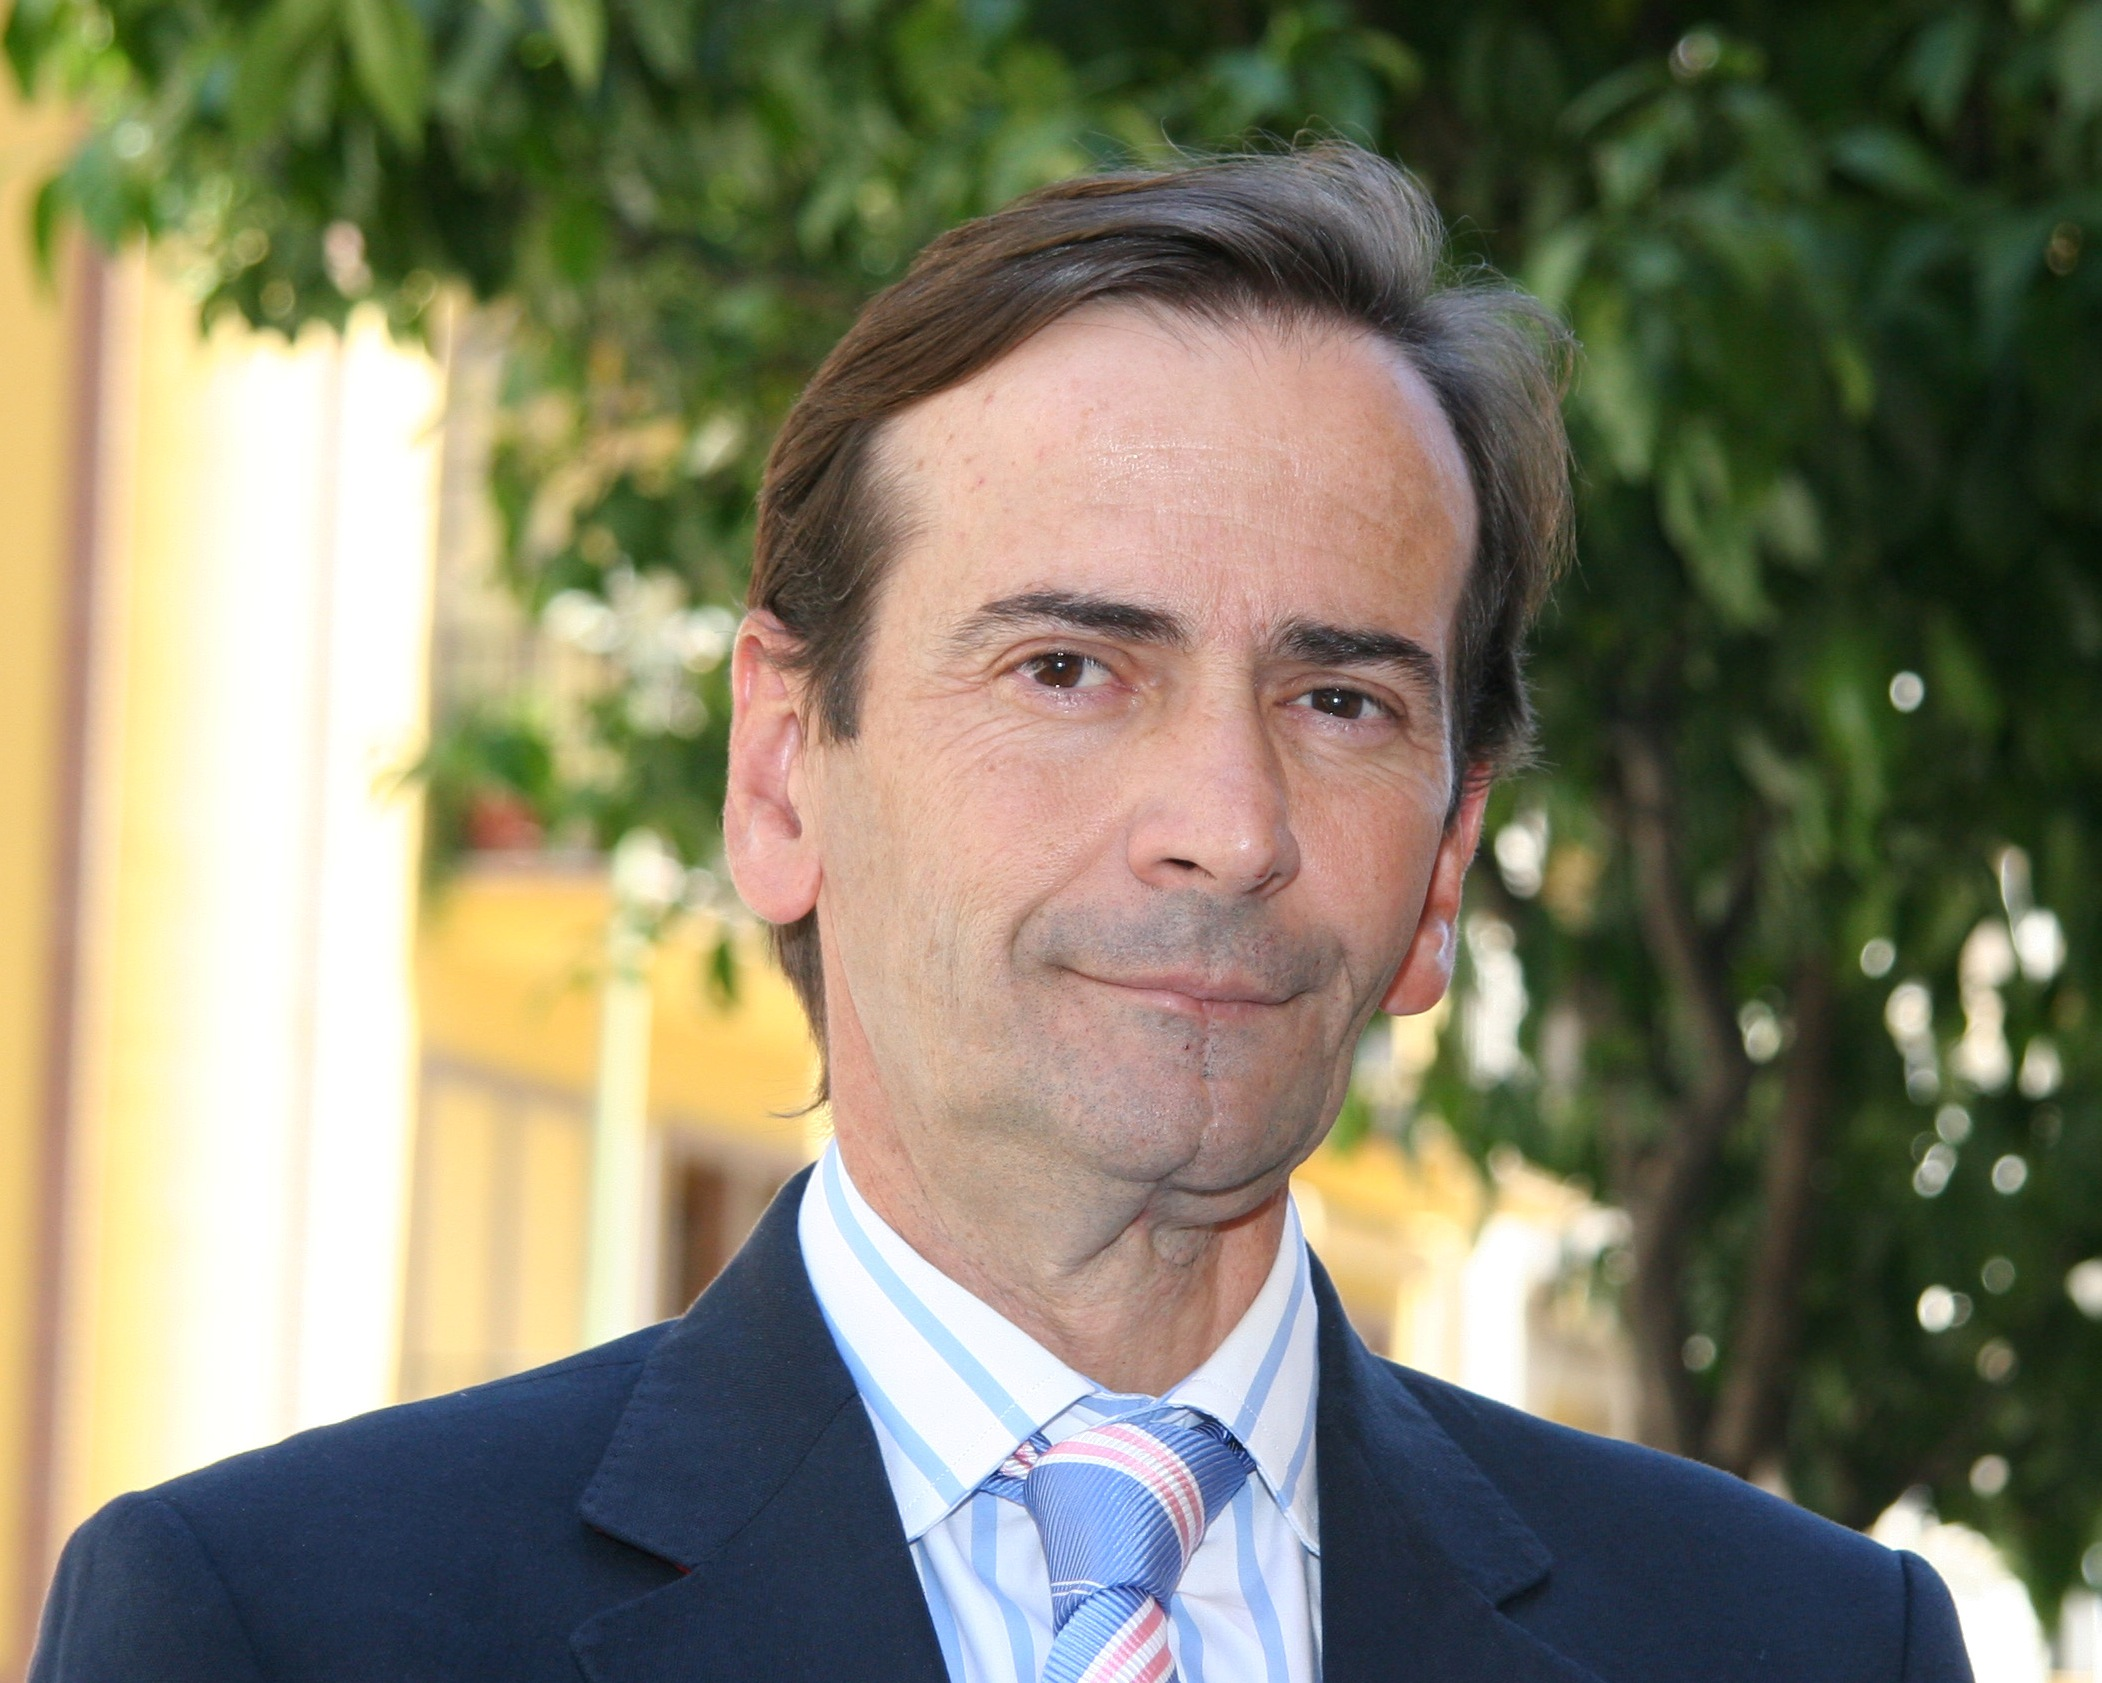 Francisco Peinado